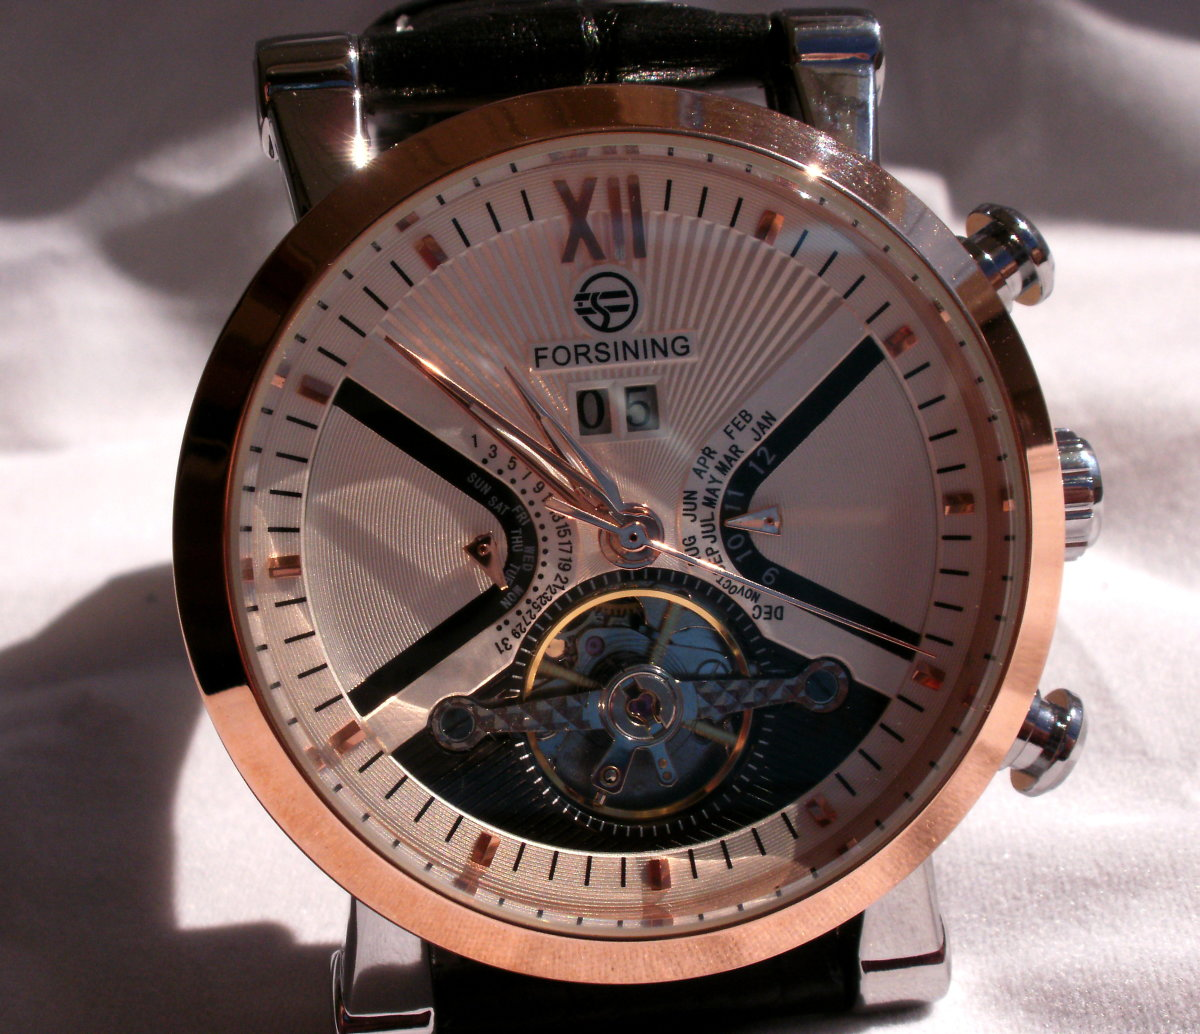 Review of the Forsining Men's Toubillon Automatic Mechanical Watch